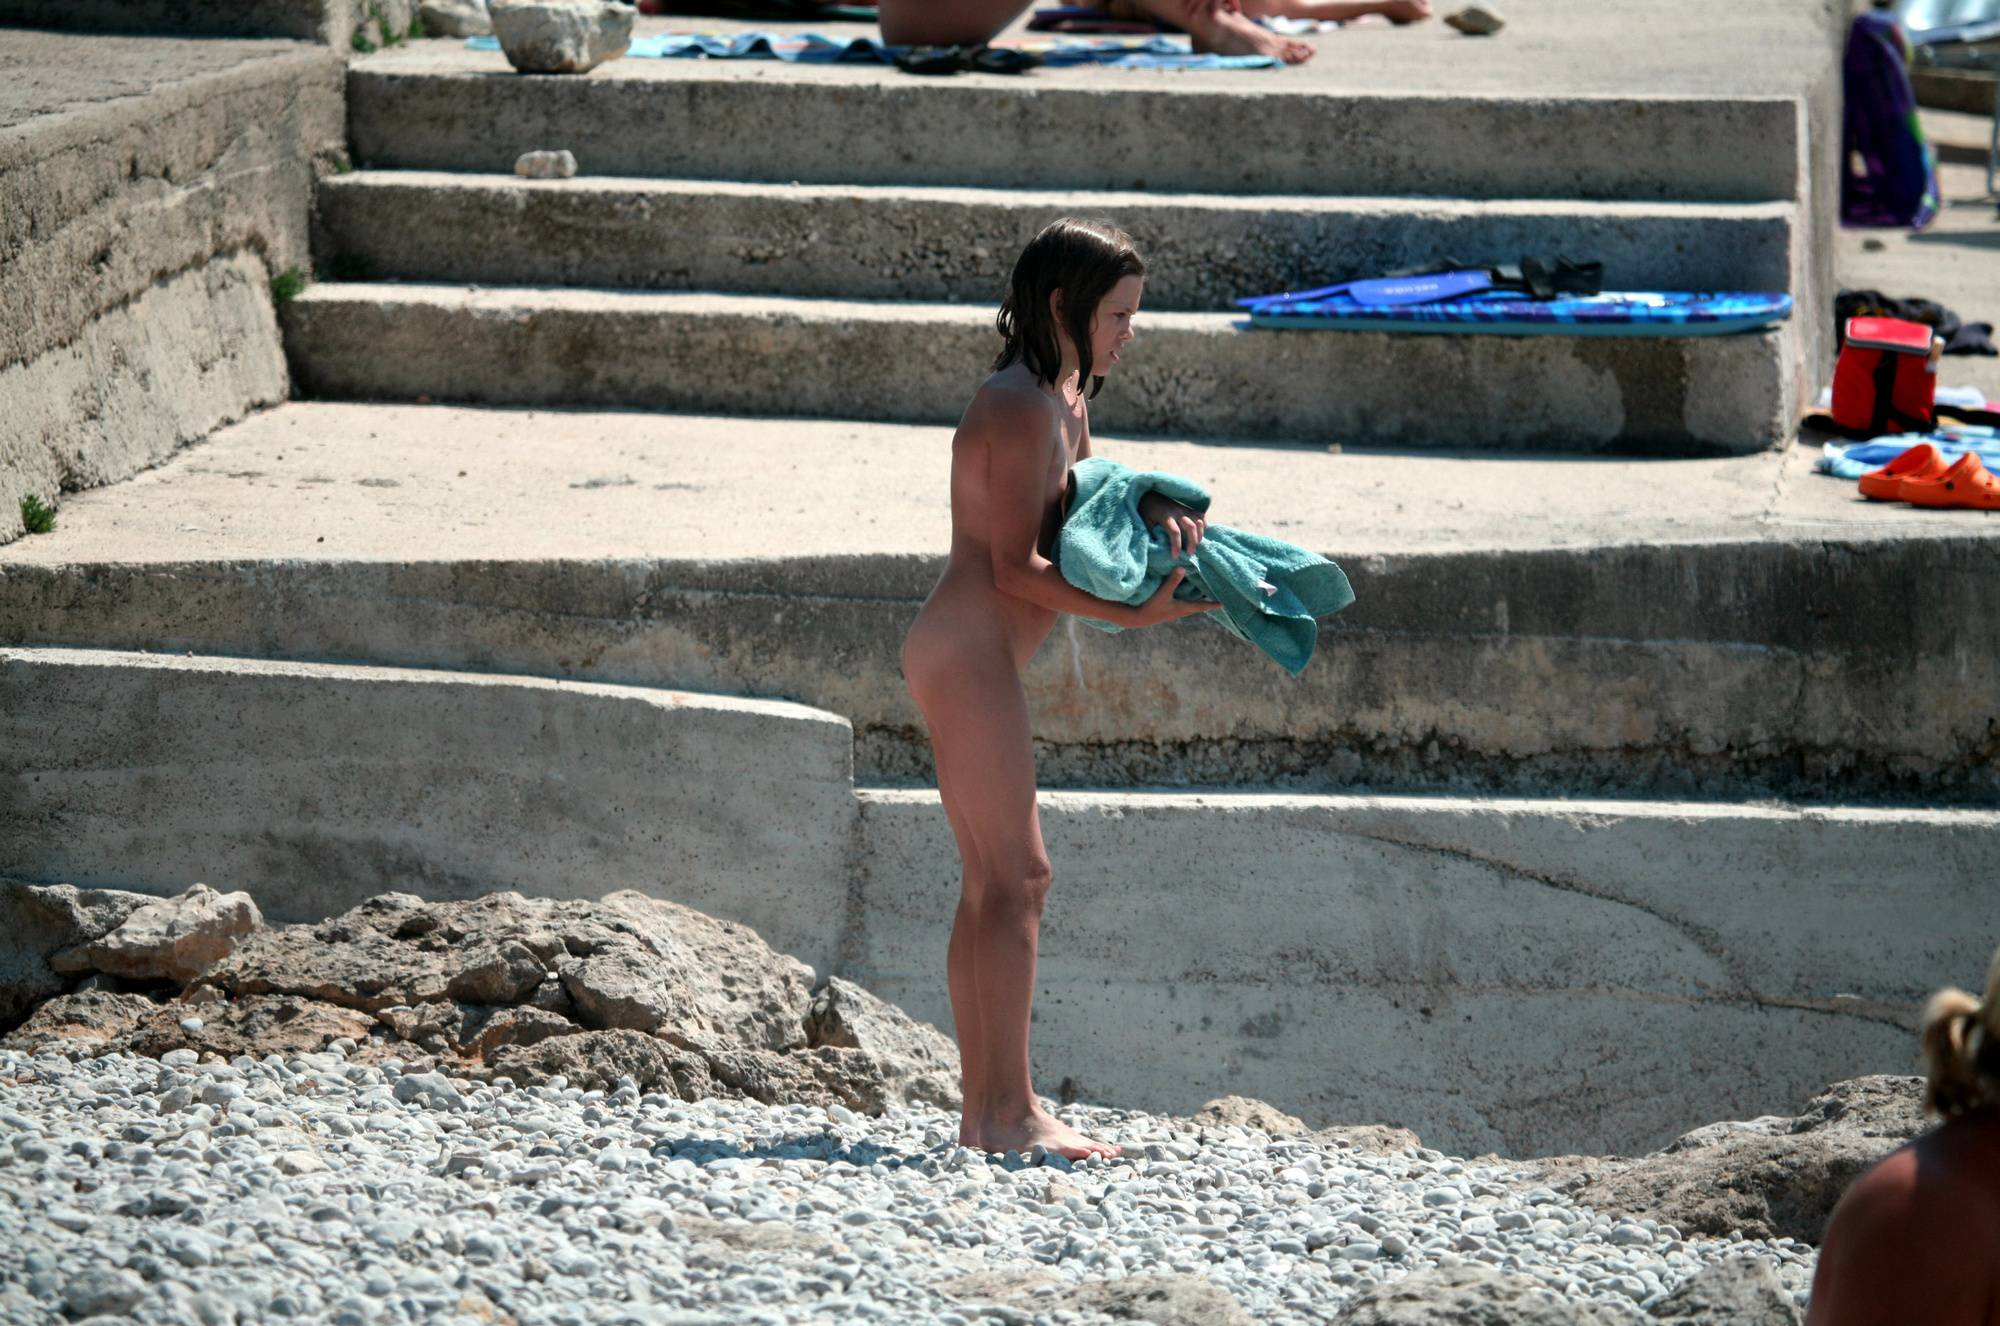 Nudist Pics Coming Down Sand Steps - 2